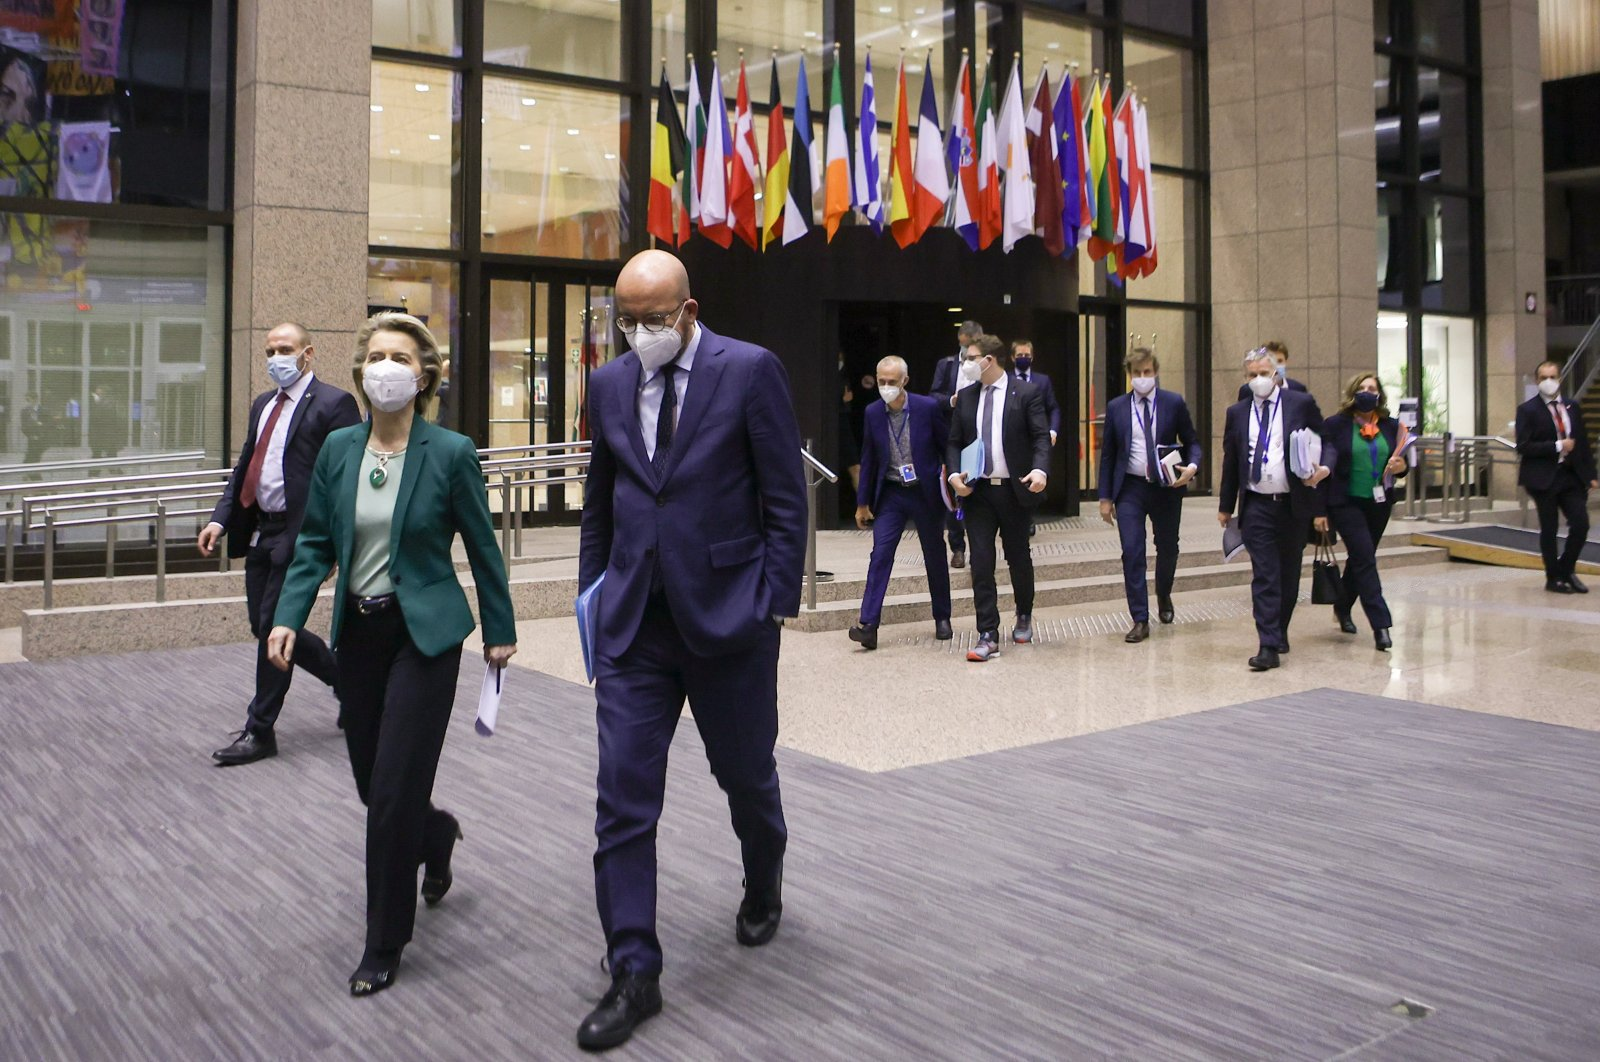 European Commission President Ursula von der Leyen (L) and European Council President Charles Michel (R) arrive to deliver a joint press conference at the end of the first day of an EU virtual summit, Brussels, Belgium, March 25, 2021. (EPA Photo)